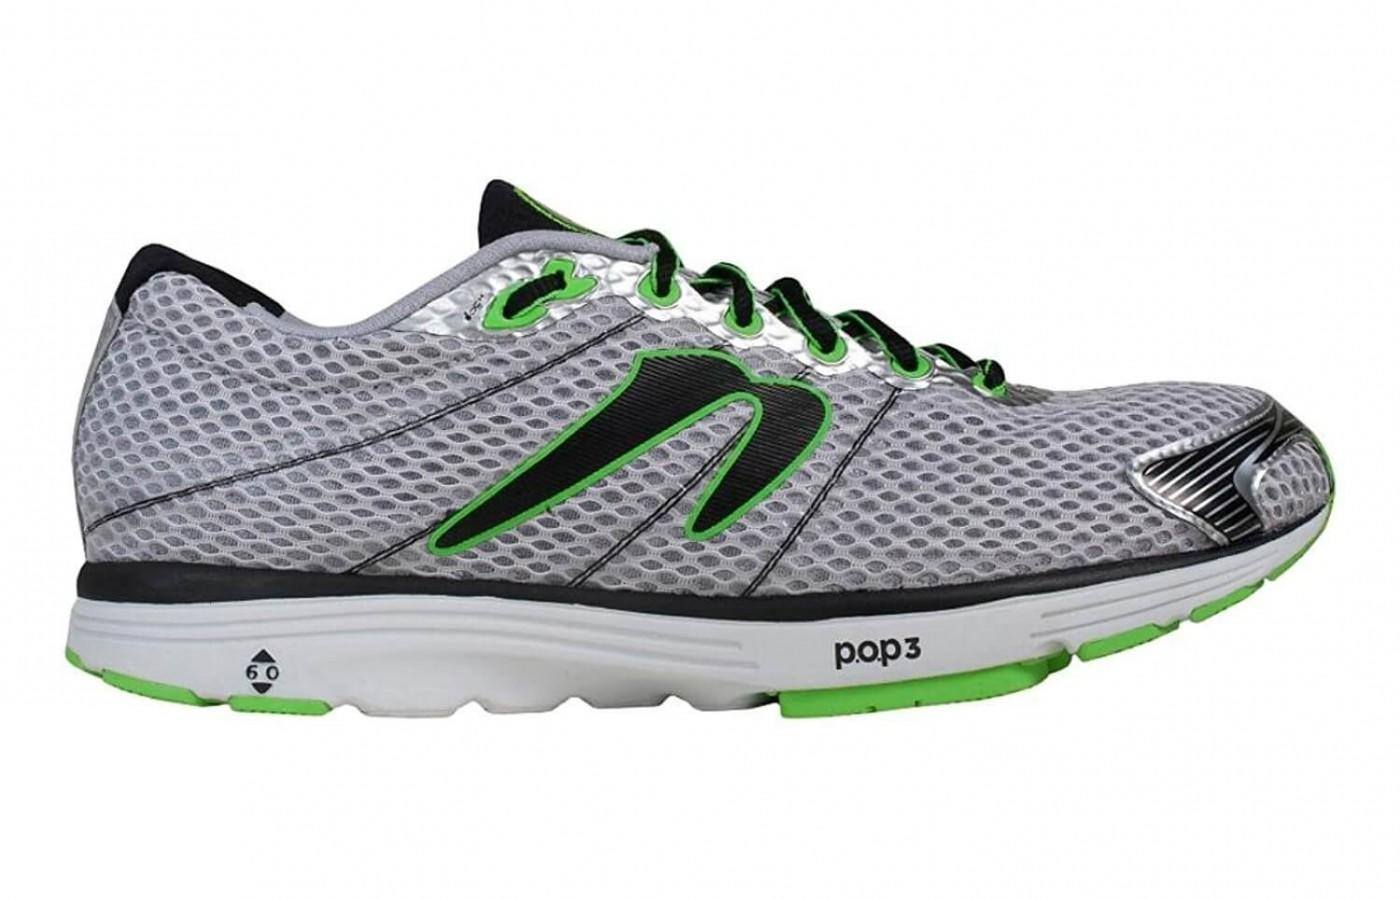 The Newton Aha II offers amazing breathability and comfort.